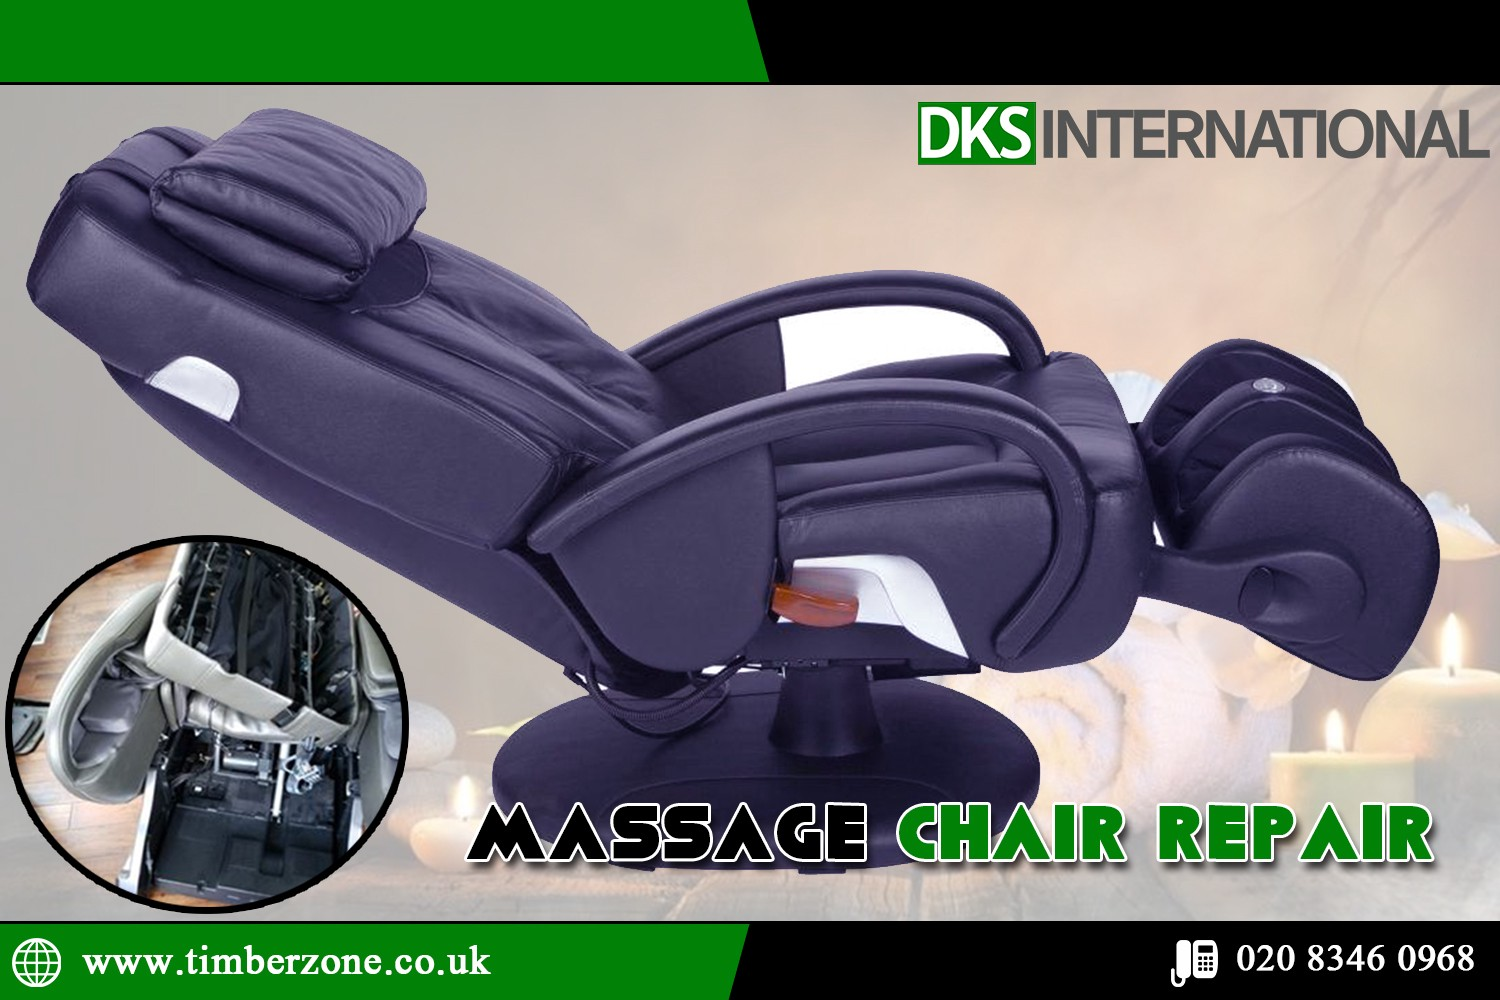 Chair Repair Get Massage Chair Repairing Service In Singapore Dks